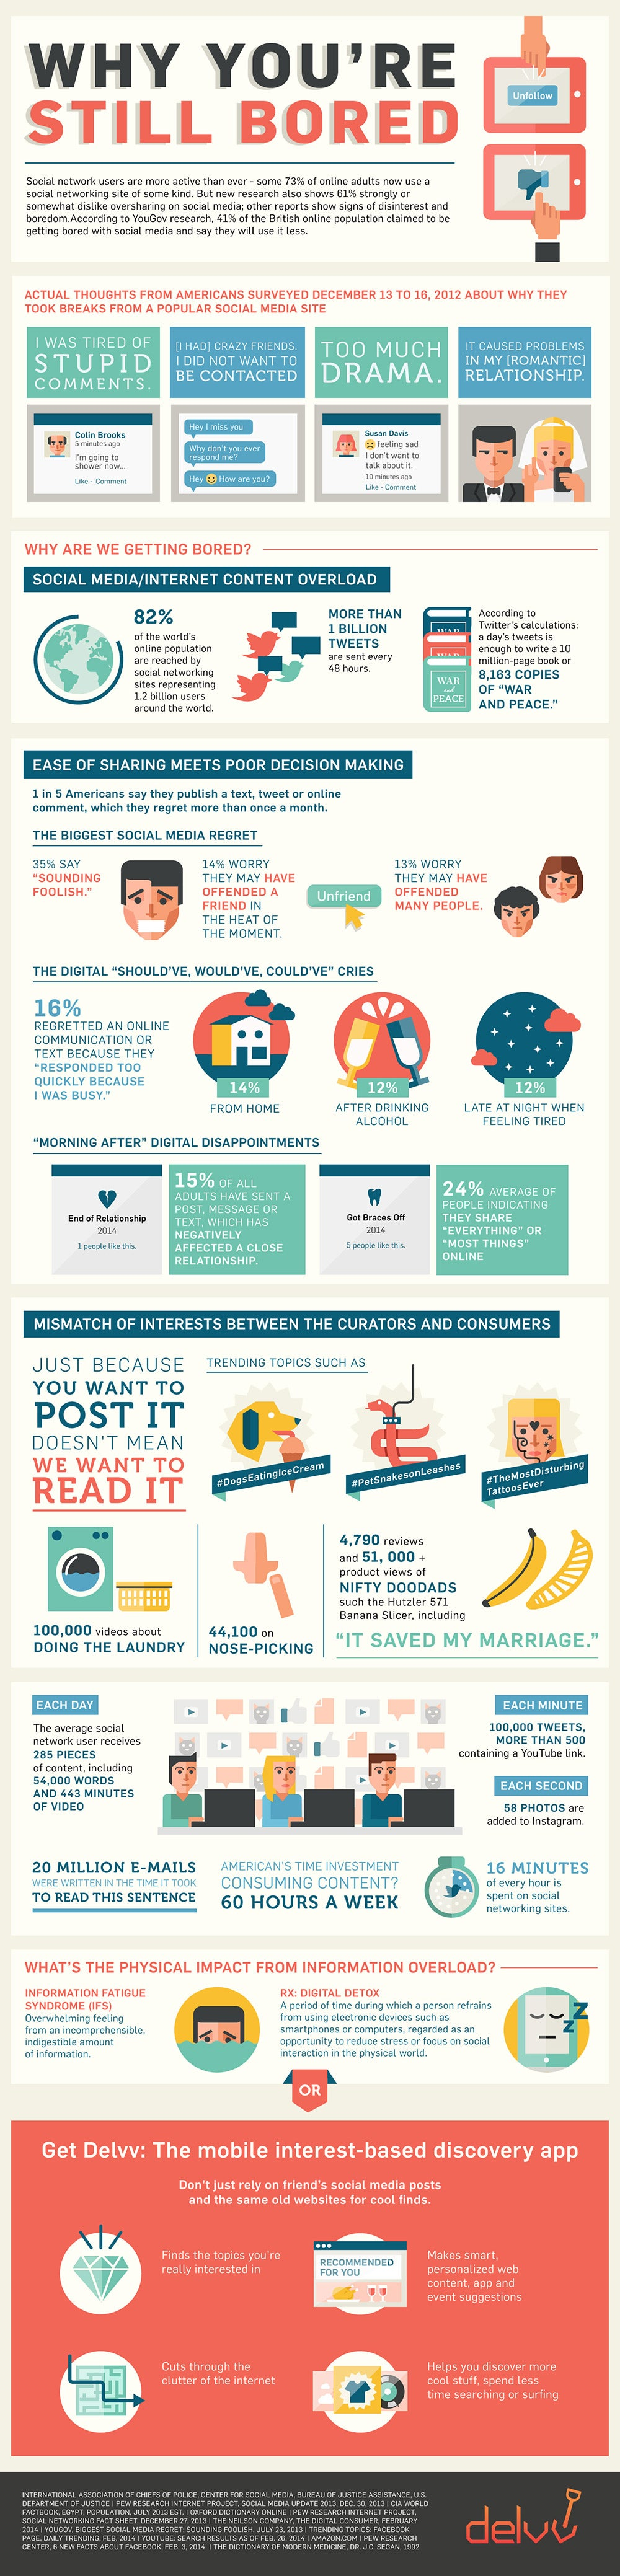 Getting Bored of Social Media? You're Not Alone. (Infographic)